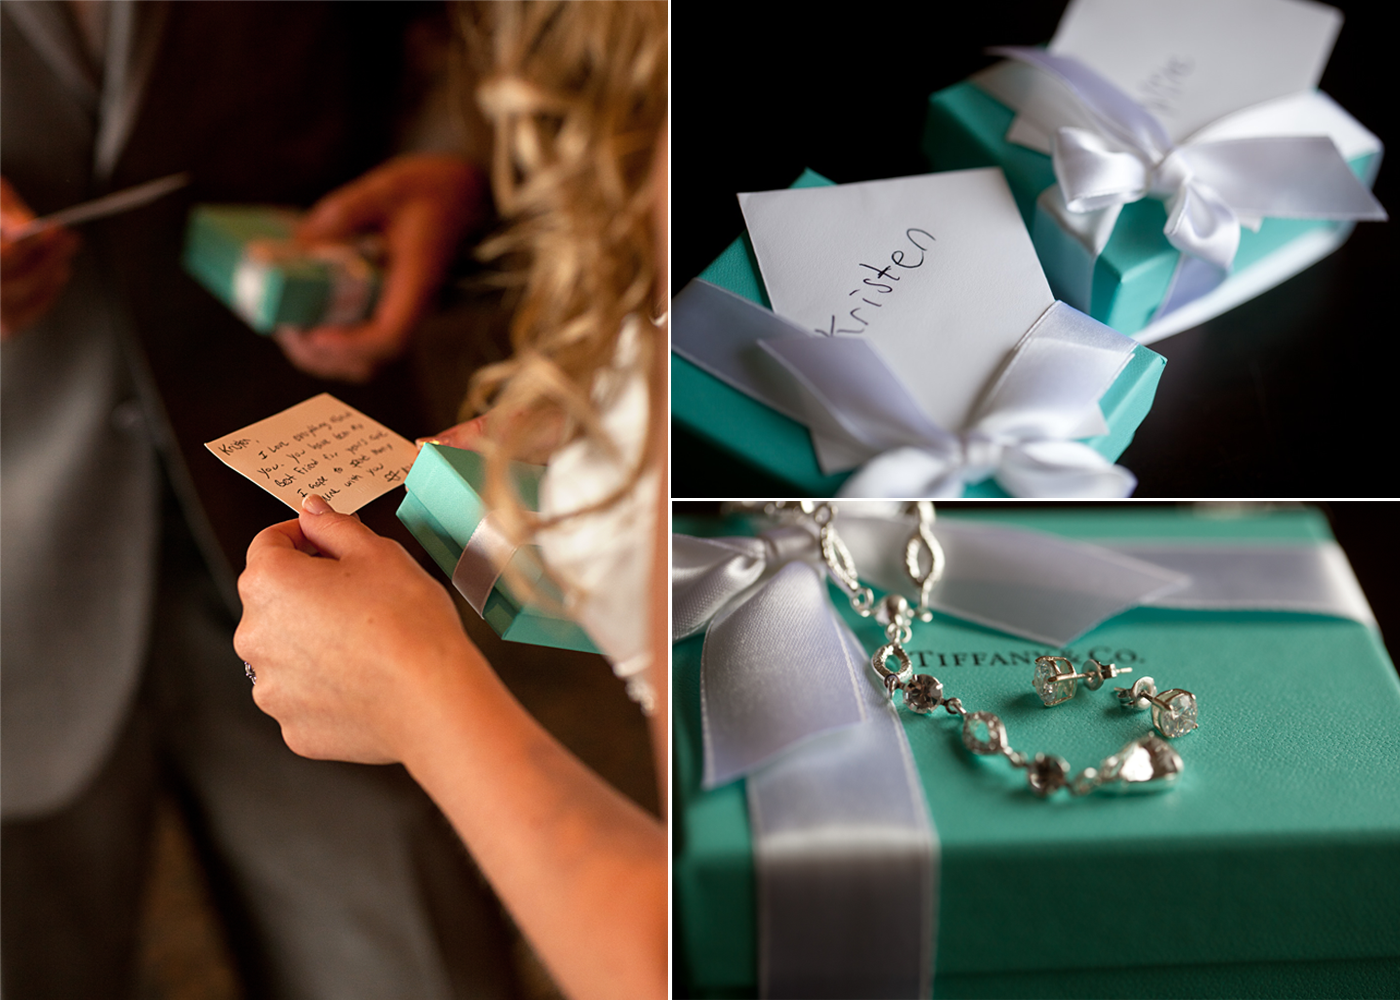 Best Wedding Gifts For Bride From Groom : ... bridal bracelet, bride and groom exchange wedding gifts OneWed.com